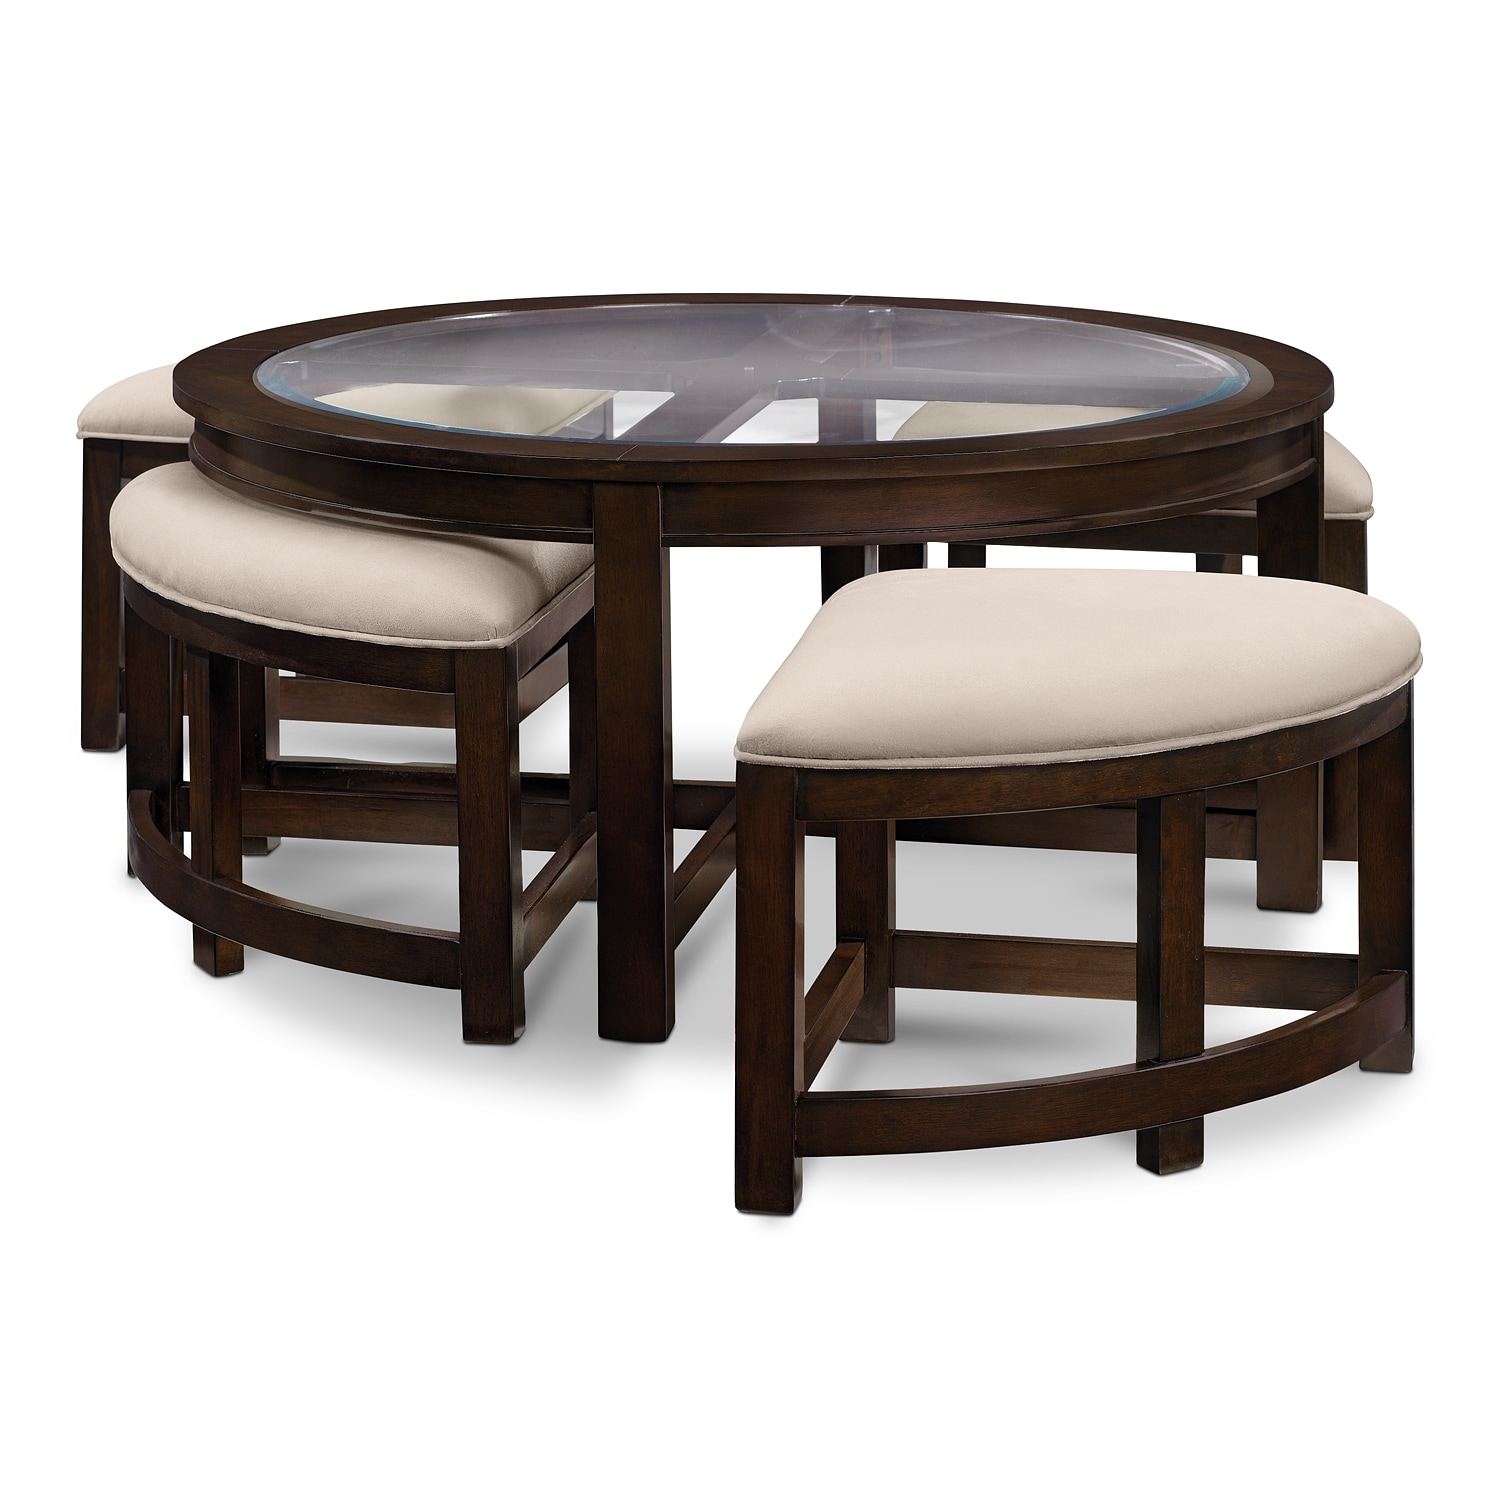 Four Corners Cocktail Table w/ 4 Benches - Merlot